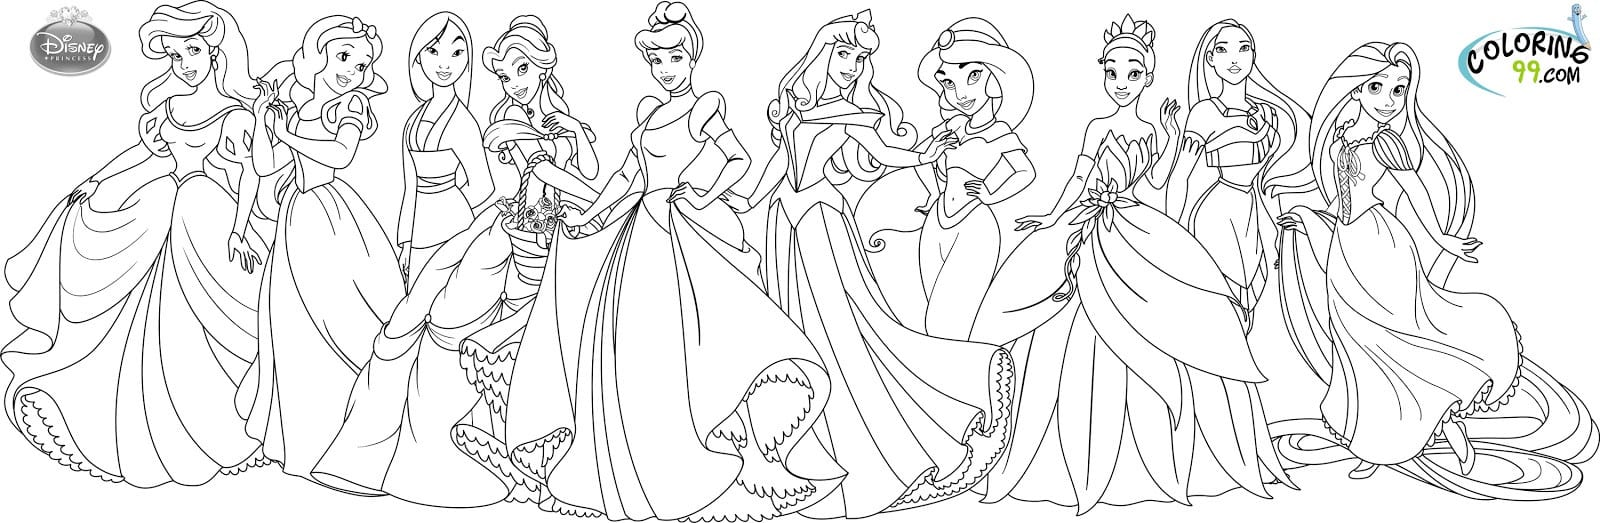 Best Disney Princess Coloring Pages Free Download Printable